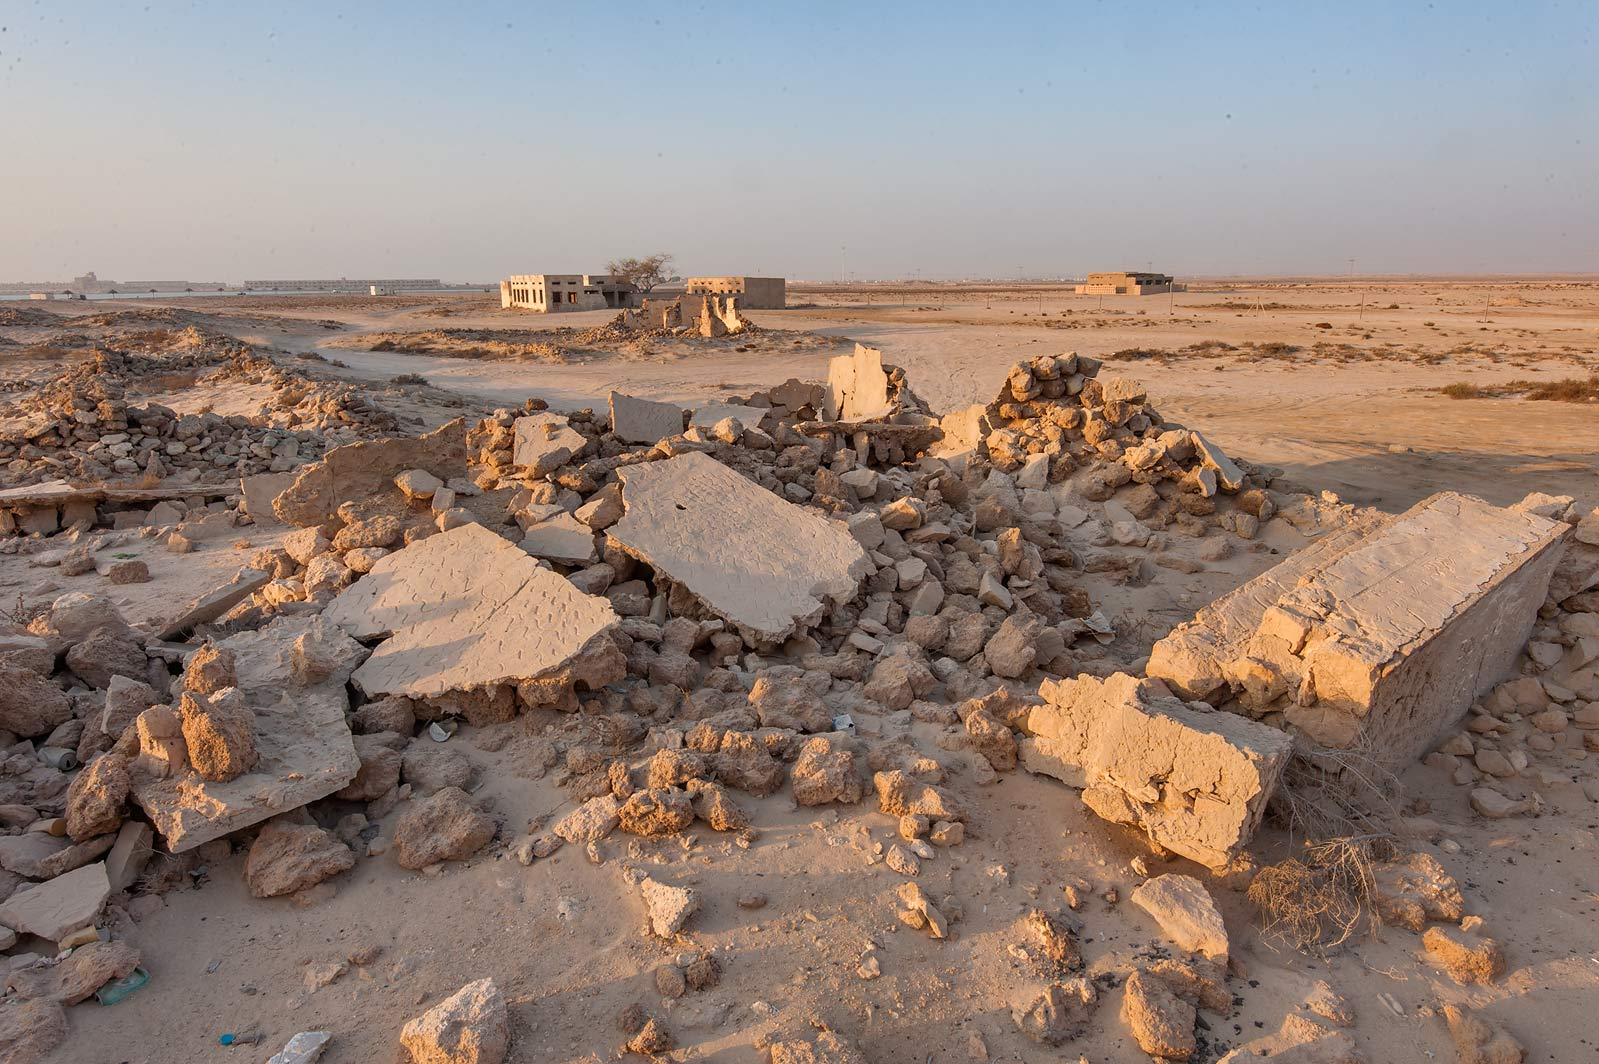 Remains of a stone house in old fishing village...eastern coast, Ash Shamal area. Qatar